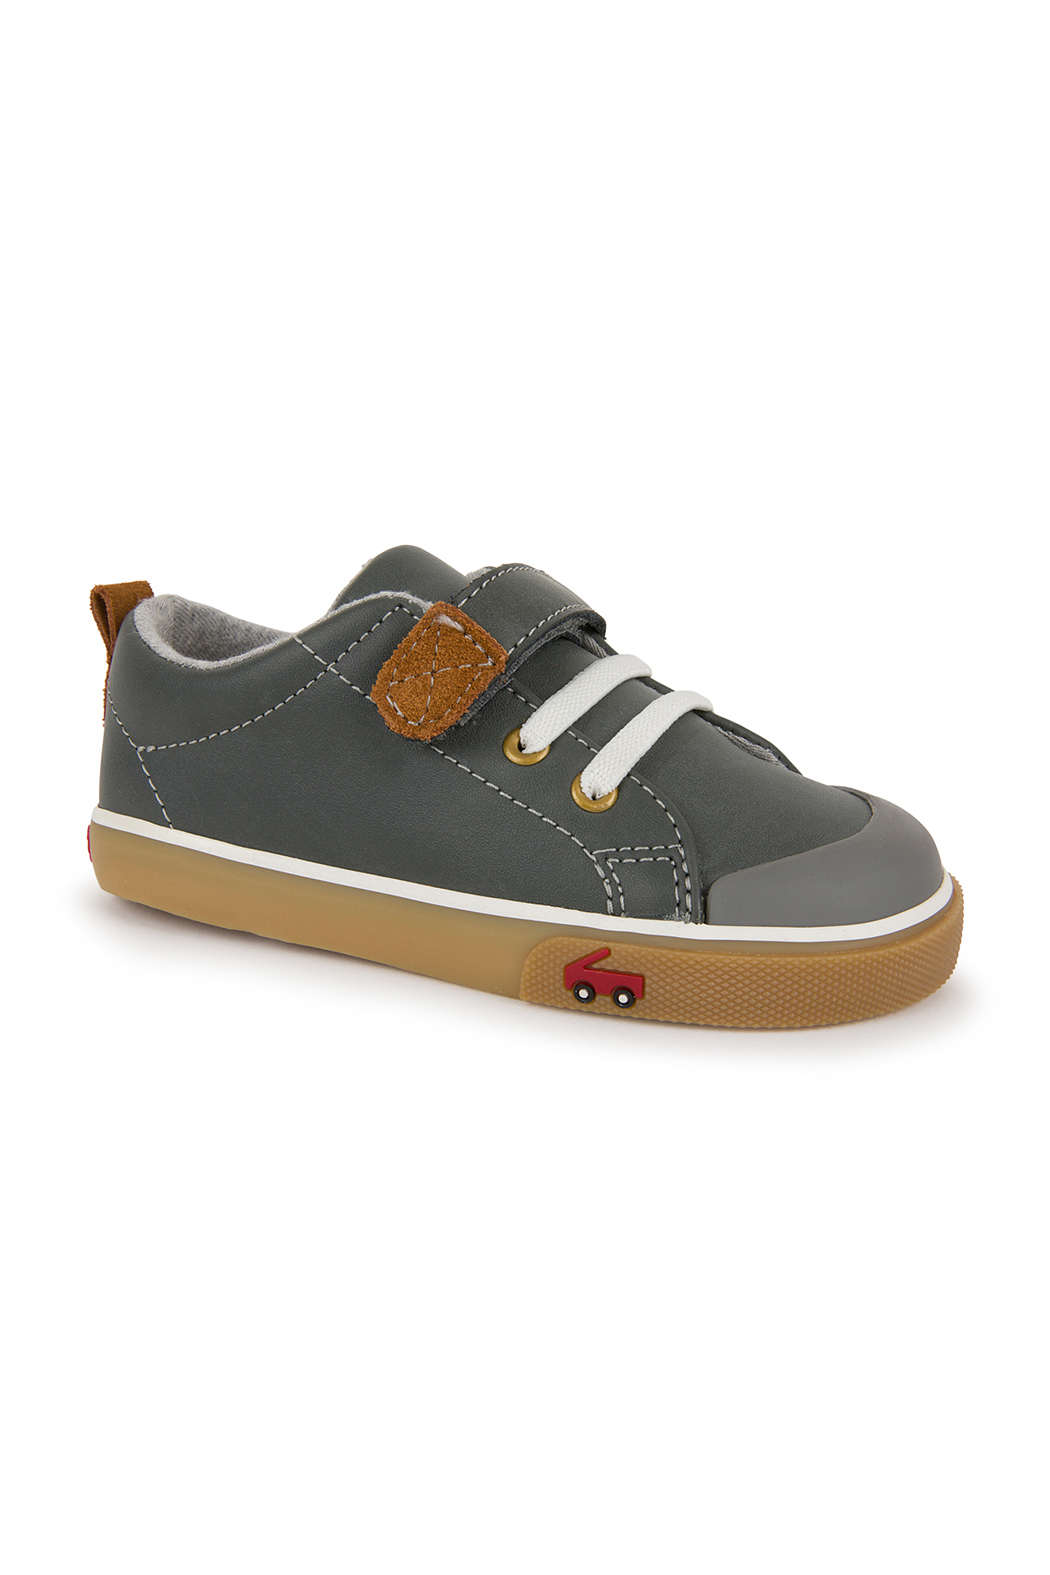 See Kai Run Stevie II Grey Leather Sneaker - Front Cropped Image